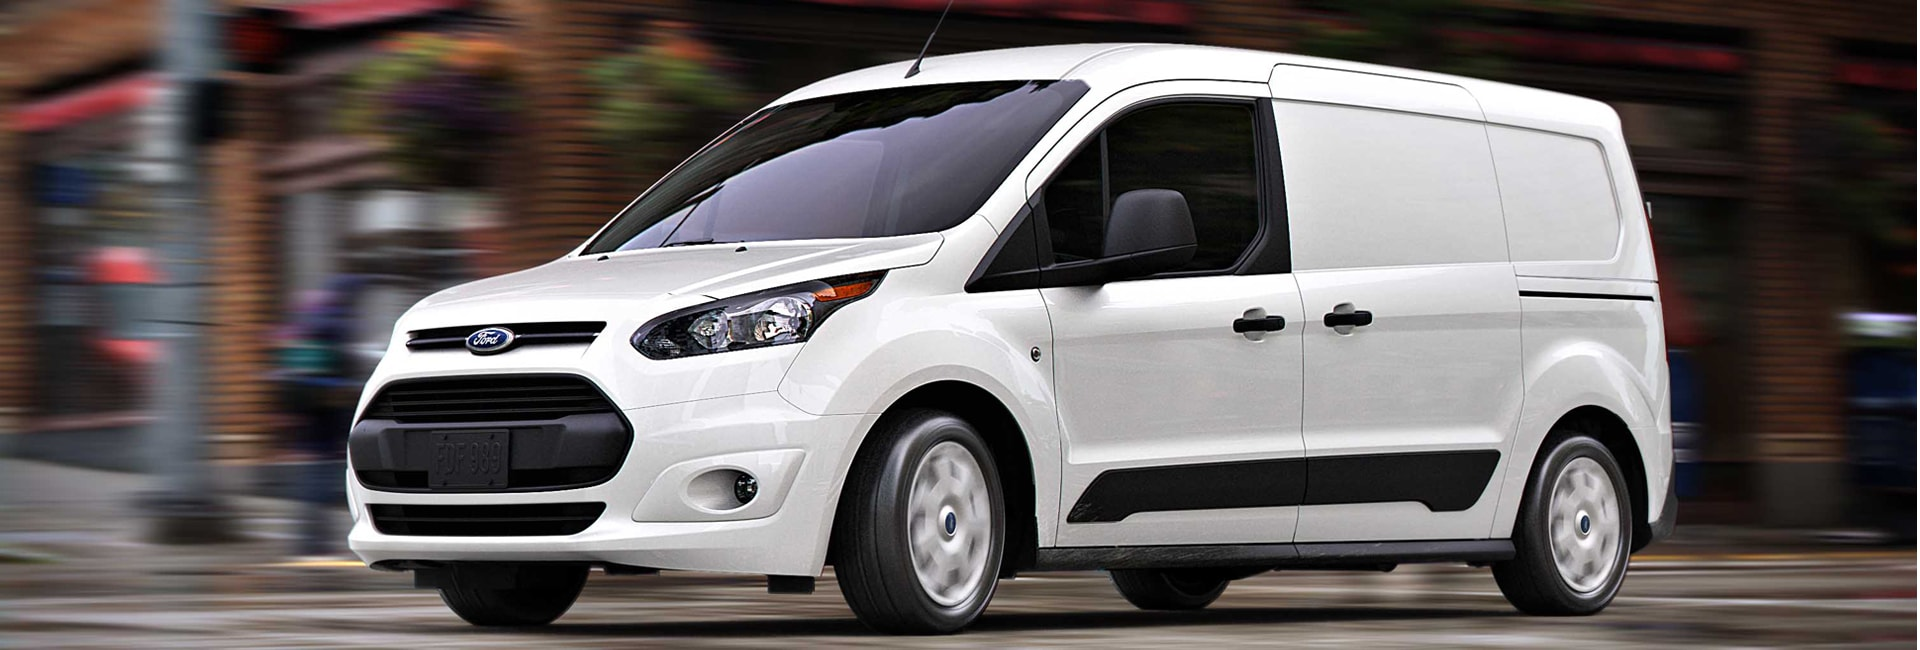 Ford Transit Exterior Vehicle Features